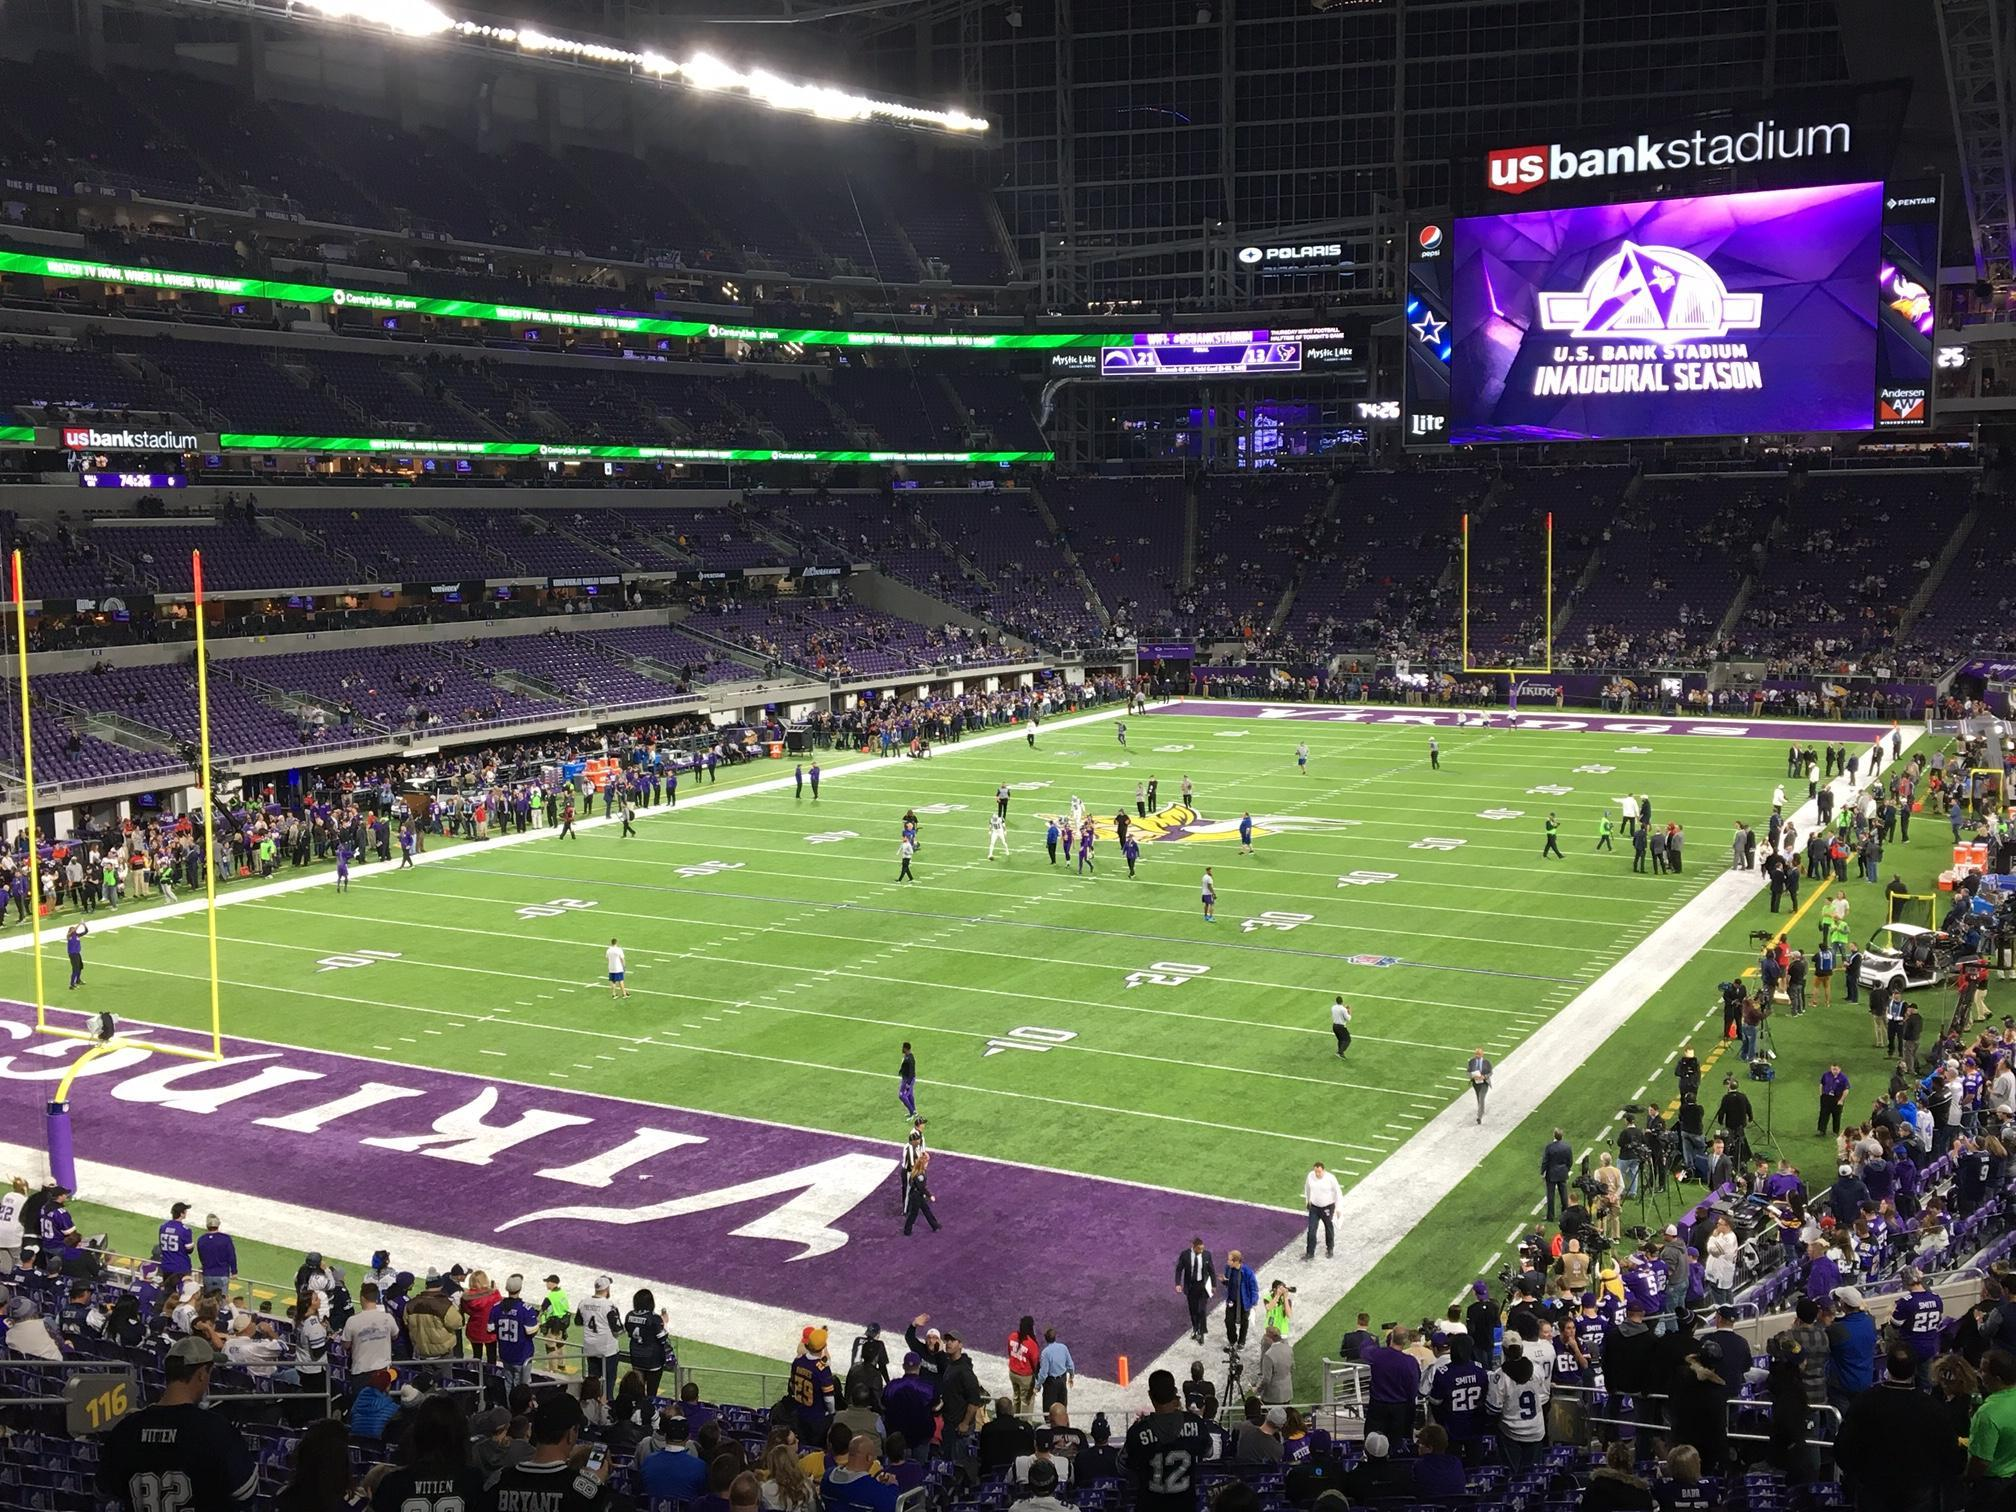 U.S. Bank Stadium Section 116 Row 31 Seat 25